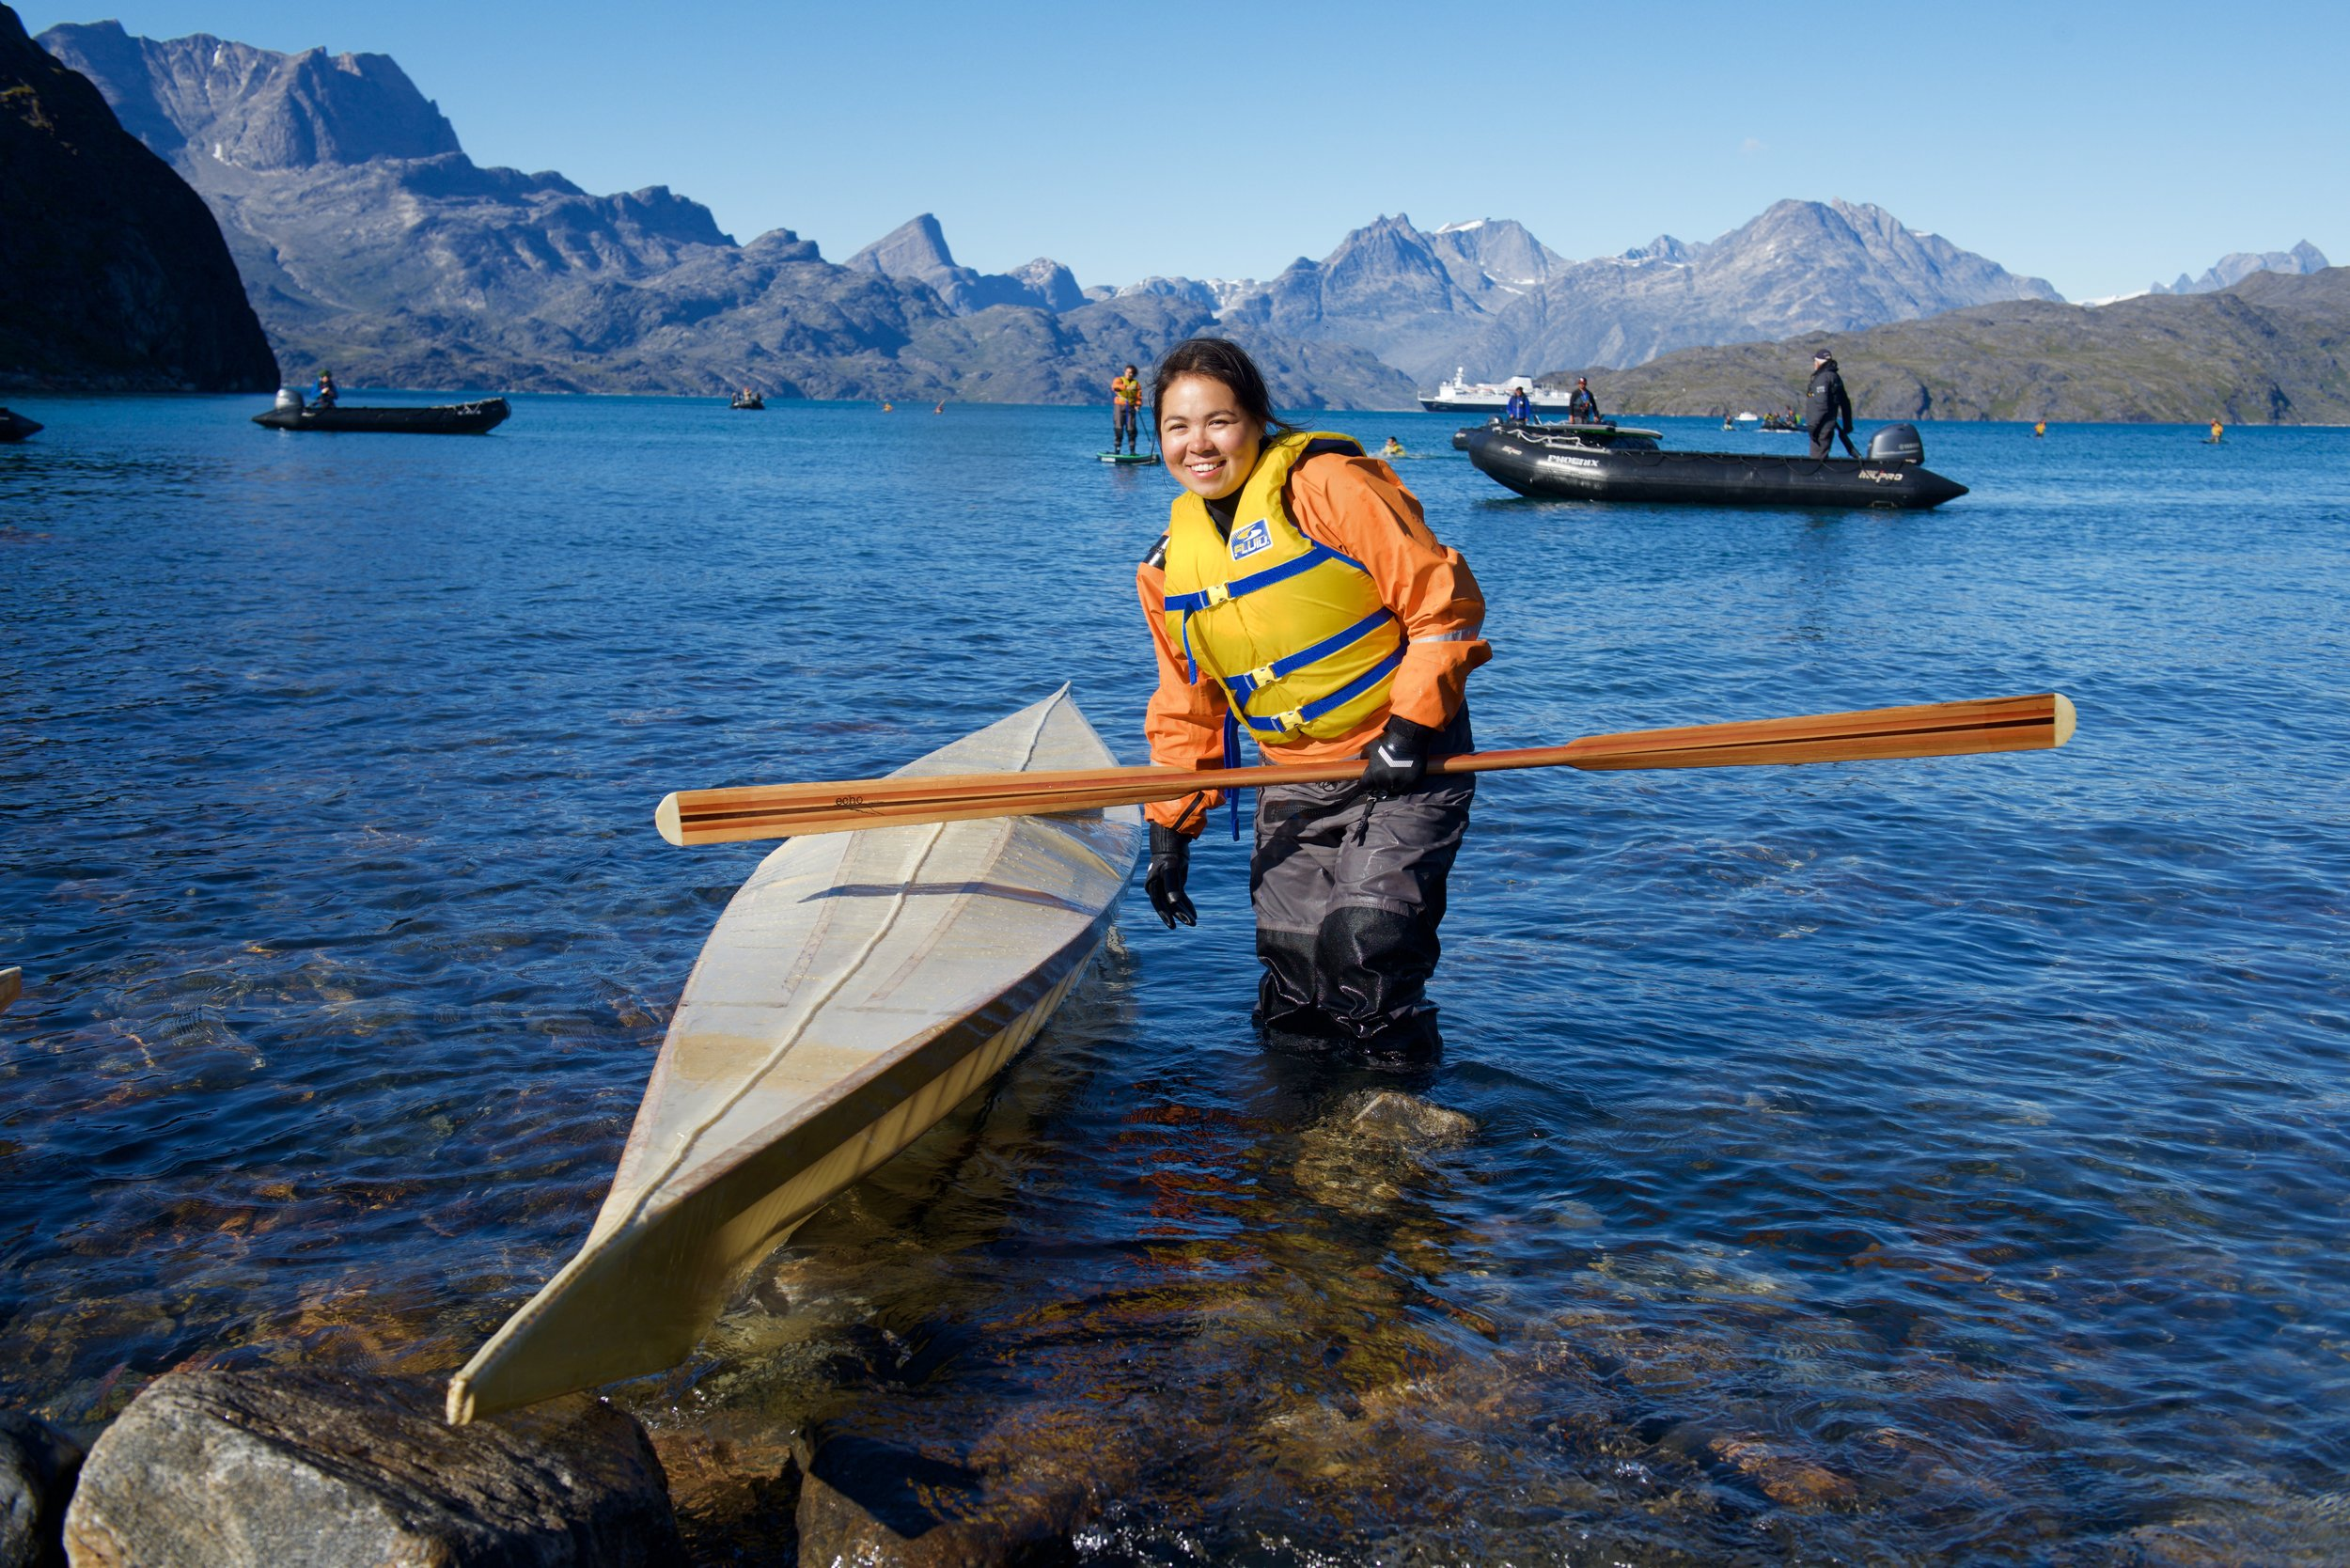 Linda Kristiansen from Maniitoq and Nuuk, Greenland, paddles a qajaq for the fist time. Linda's mom was part of the revival of qajaqing traditions in Greenland.